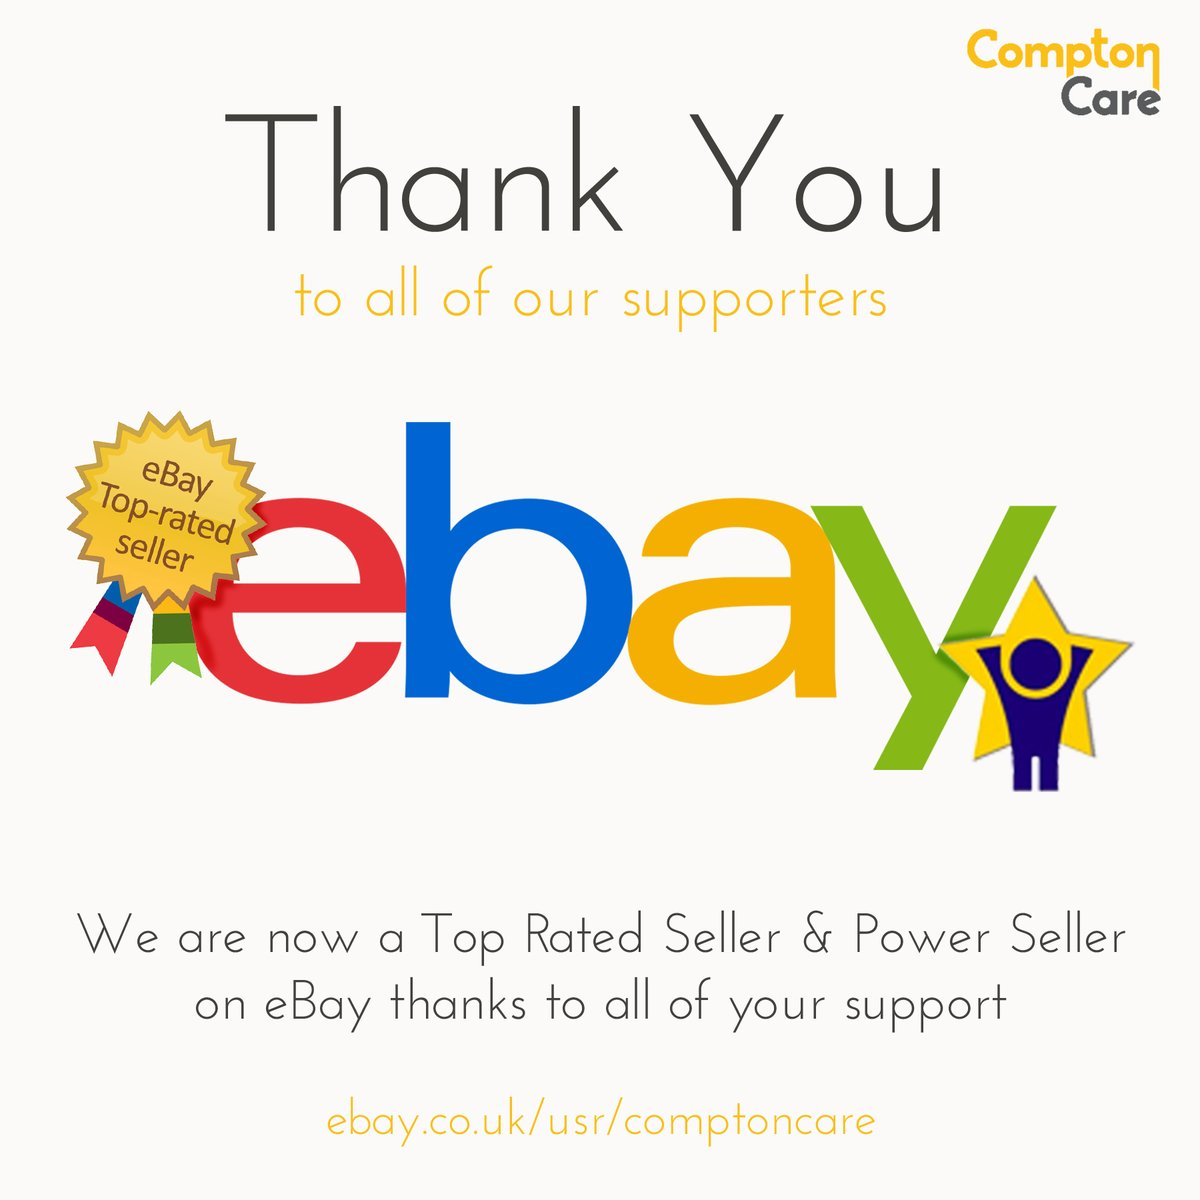 Compton Care On Twitter Our Ebay Store Has Reached Top Rated Seller And Power Seller Status What An Achievement We Would Like To Take This Opportunity To Thank All Of Our Supporters